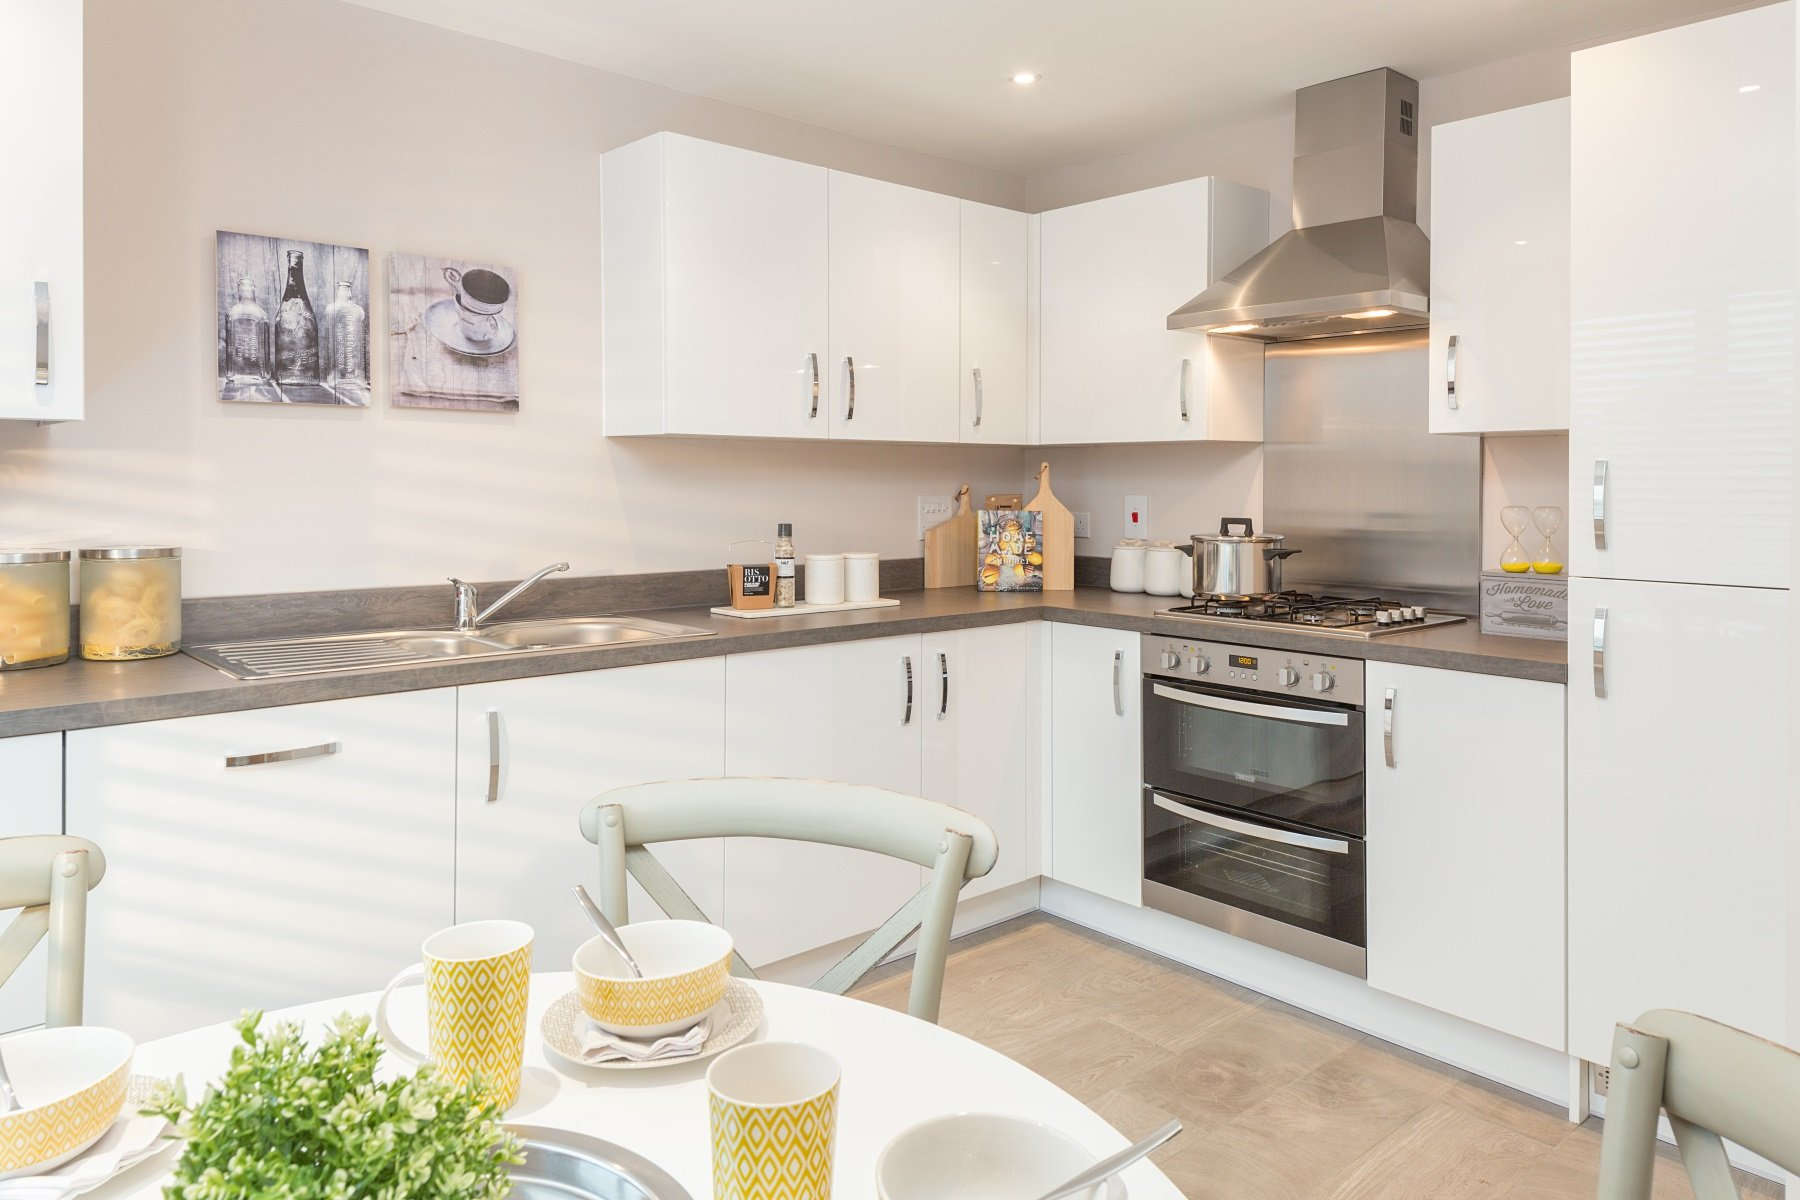 TW Exeter - Cranbrook - Flatford example kitchen